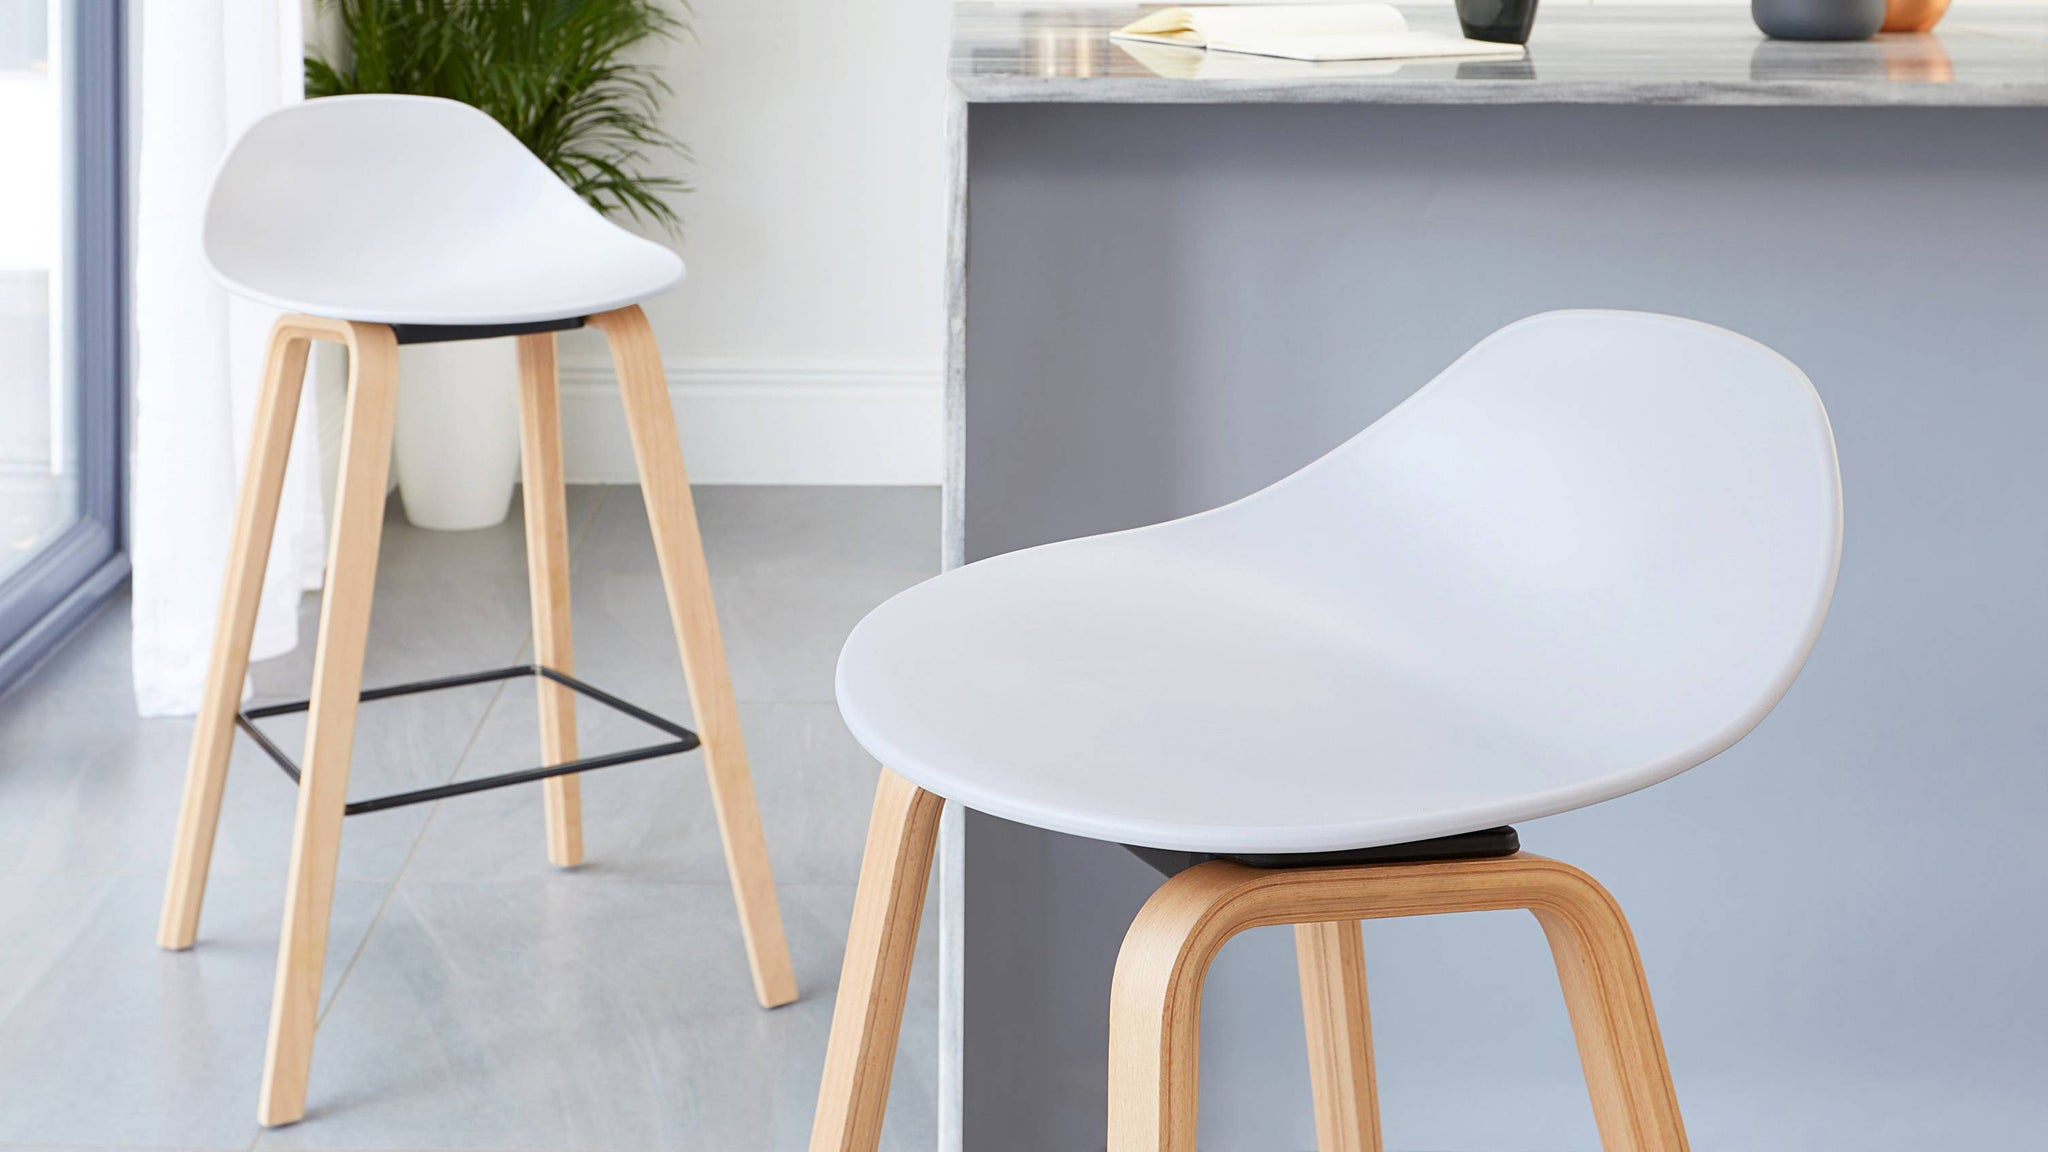 Cool grey bar stools